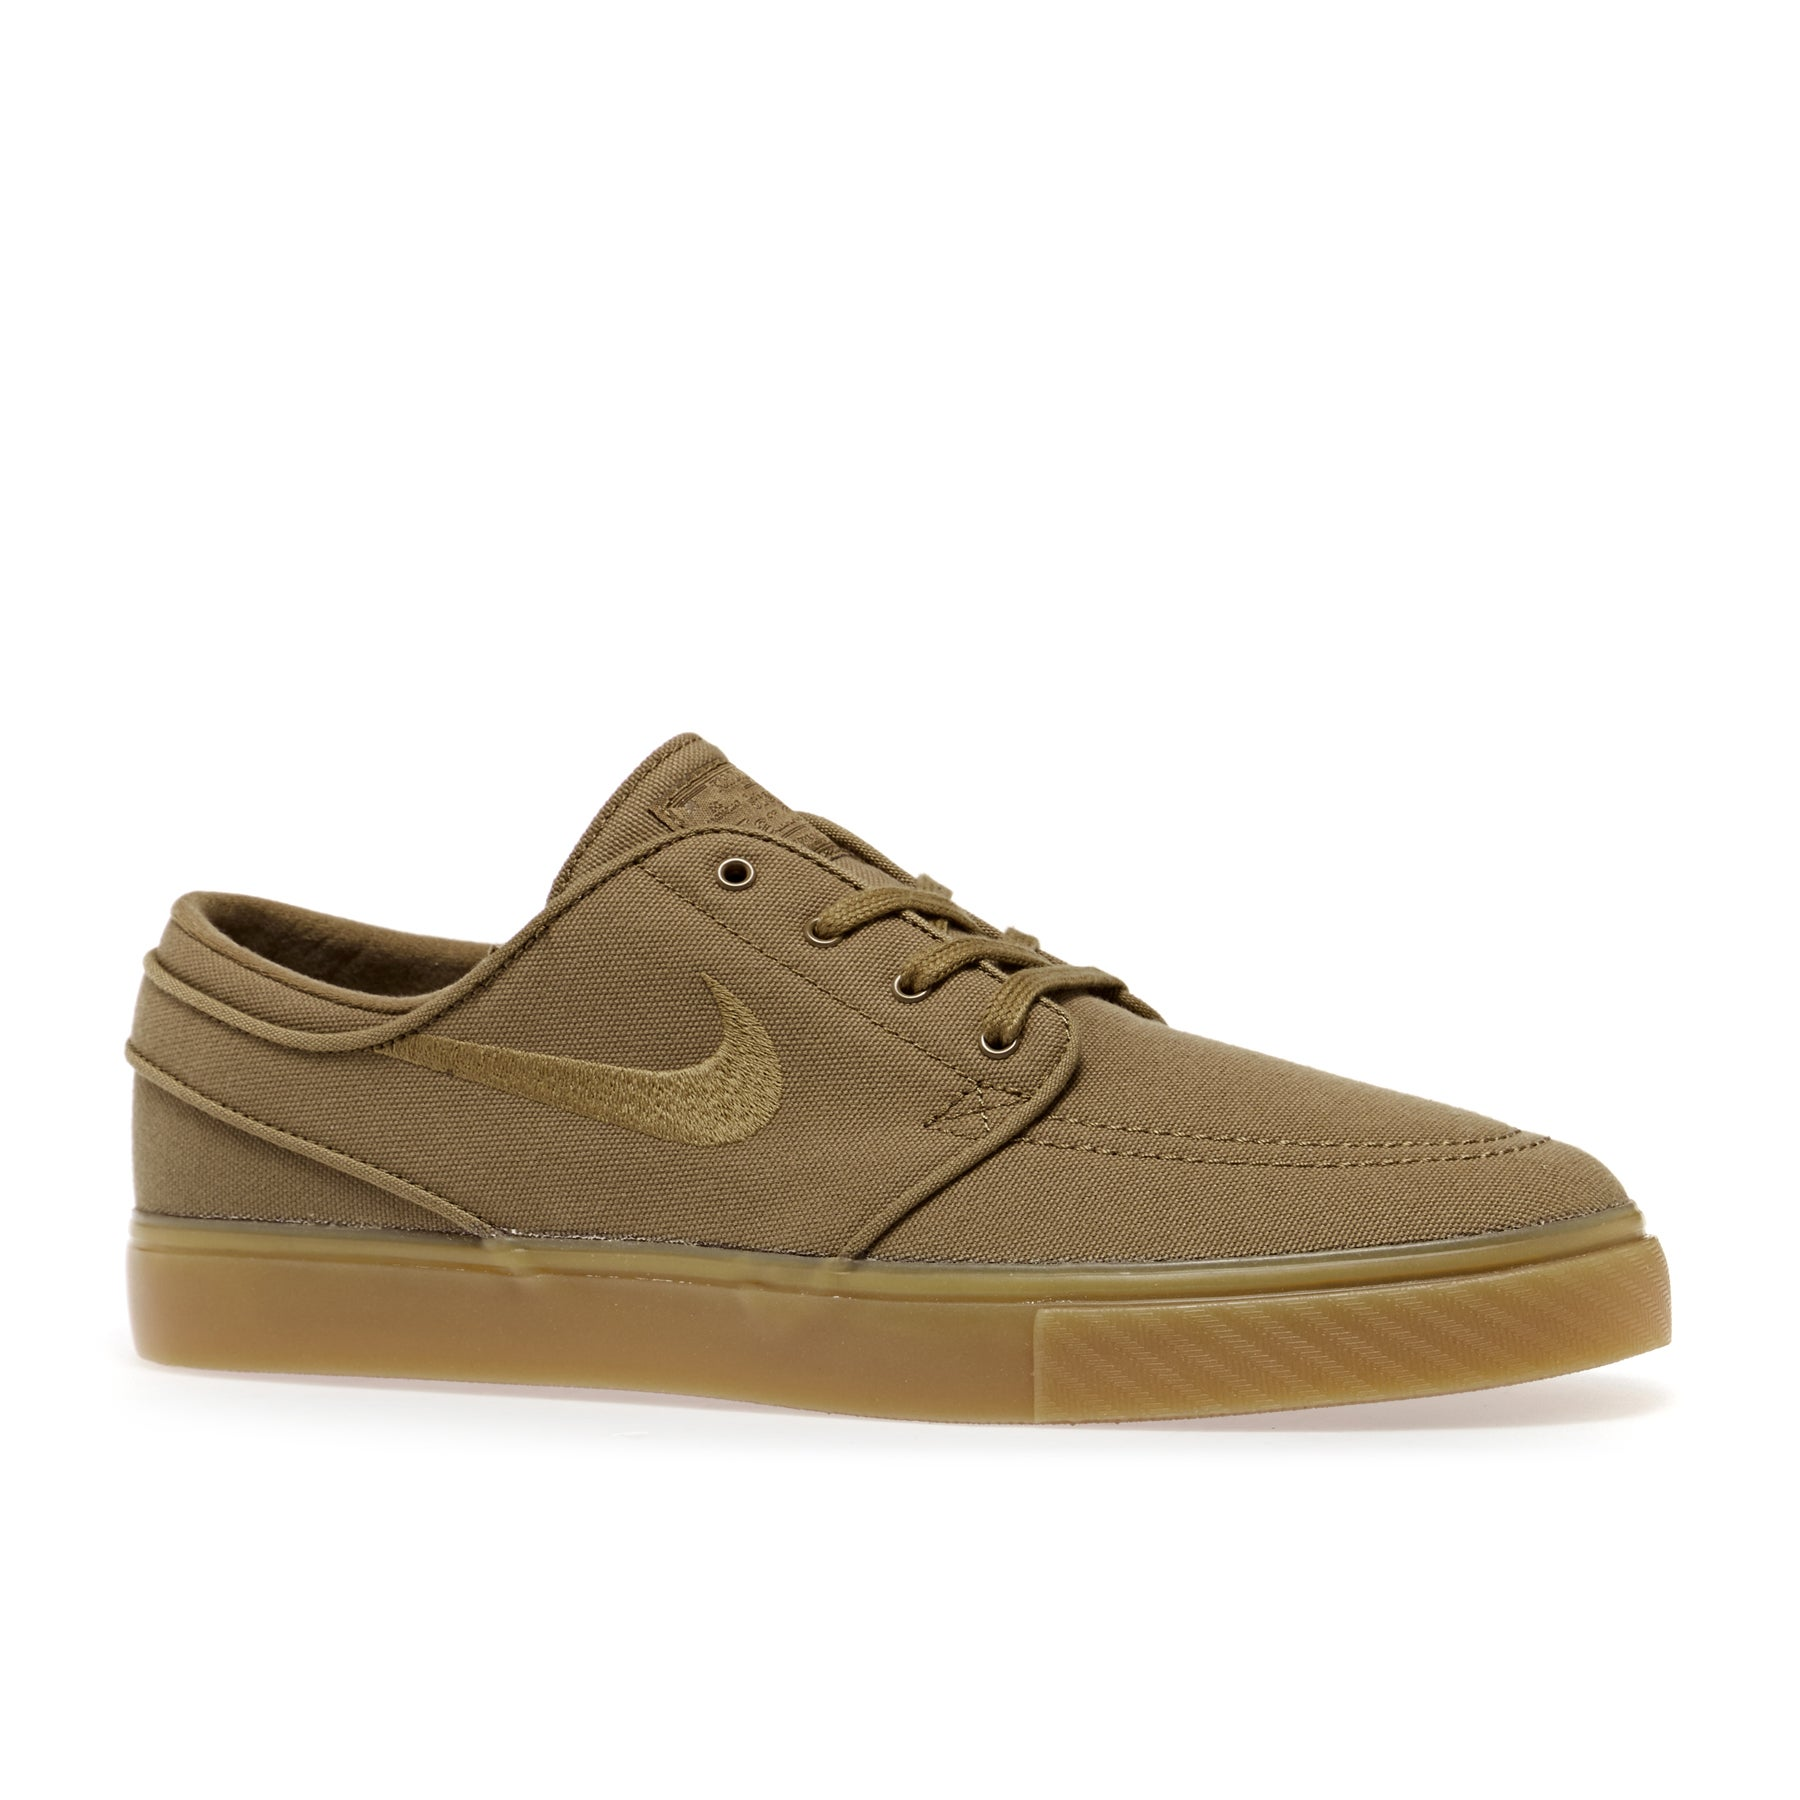 buy online b3fcc c204b Nike SB Zoom Stefan Janoski Canvas Shoes. Golden Beige Gum Yellow